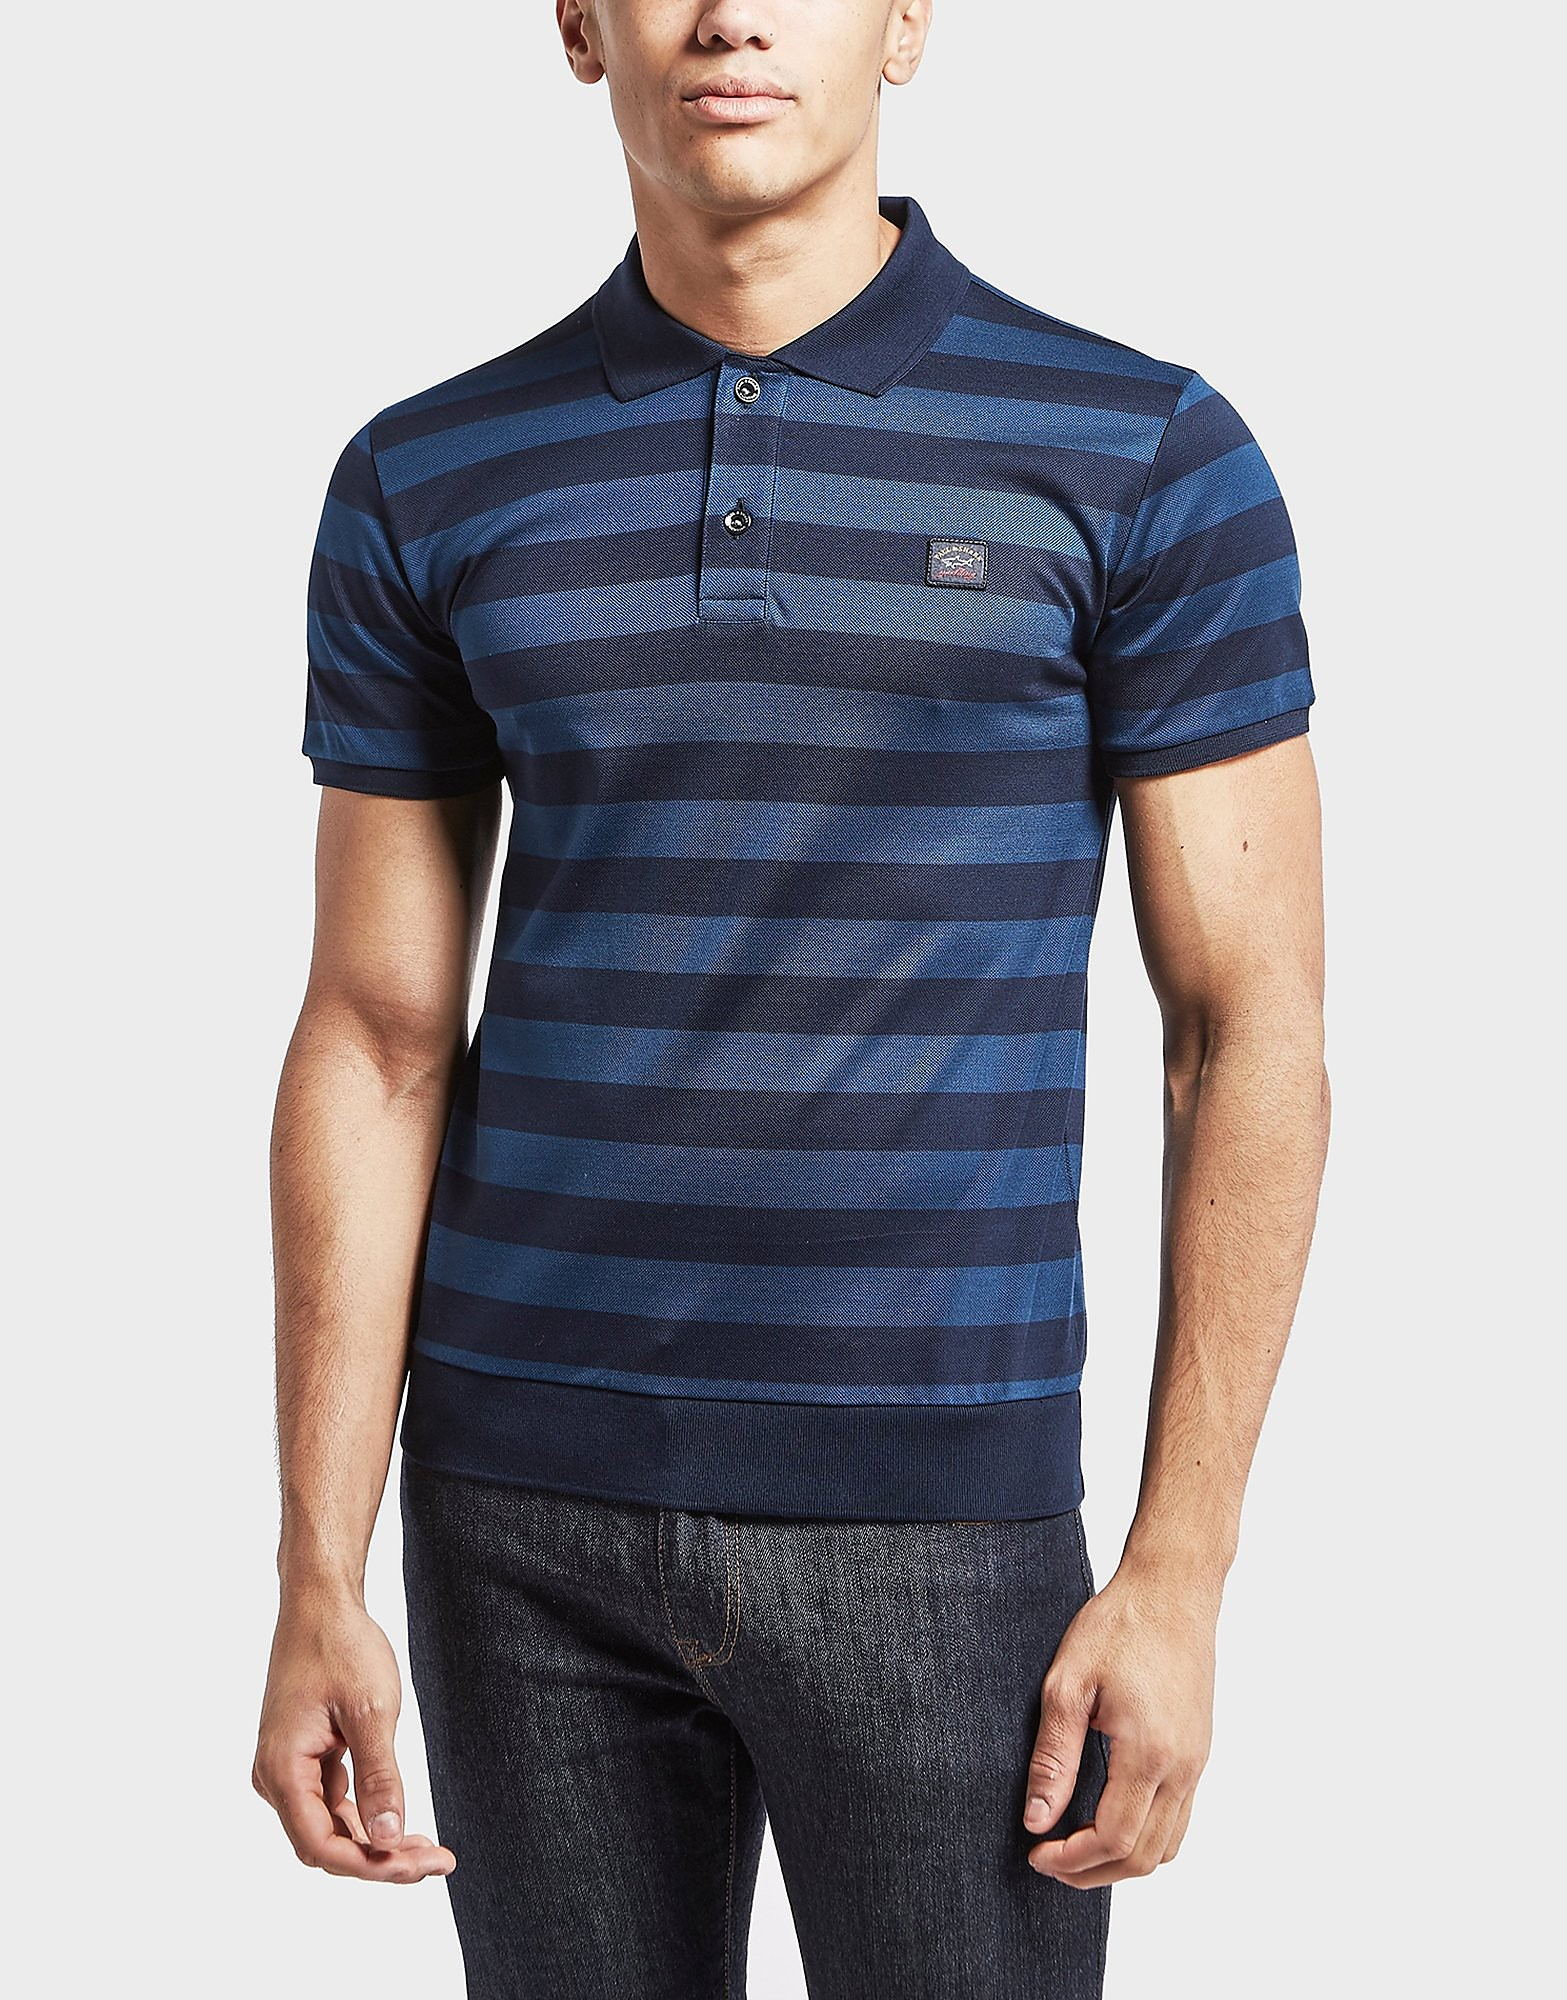 Paul and Shark Stripe Short Sleeve Polo Shirt